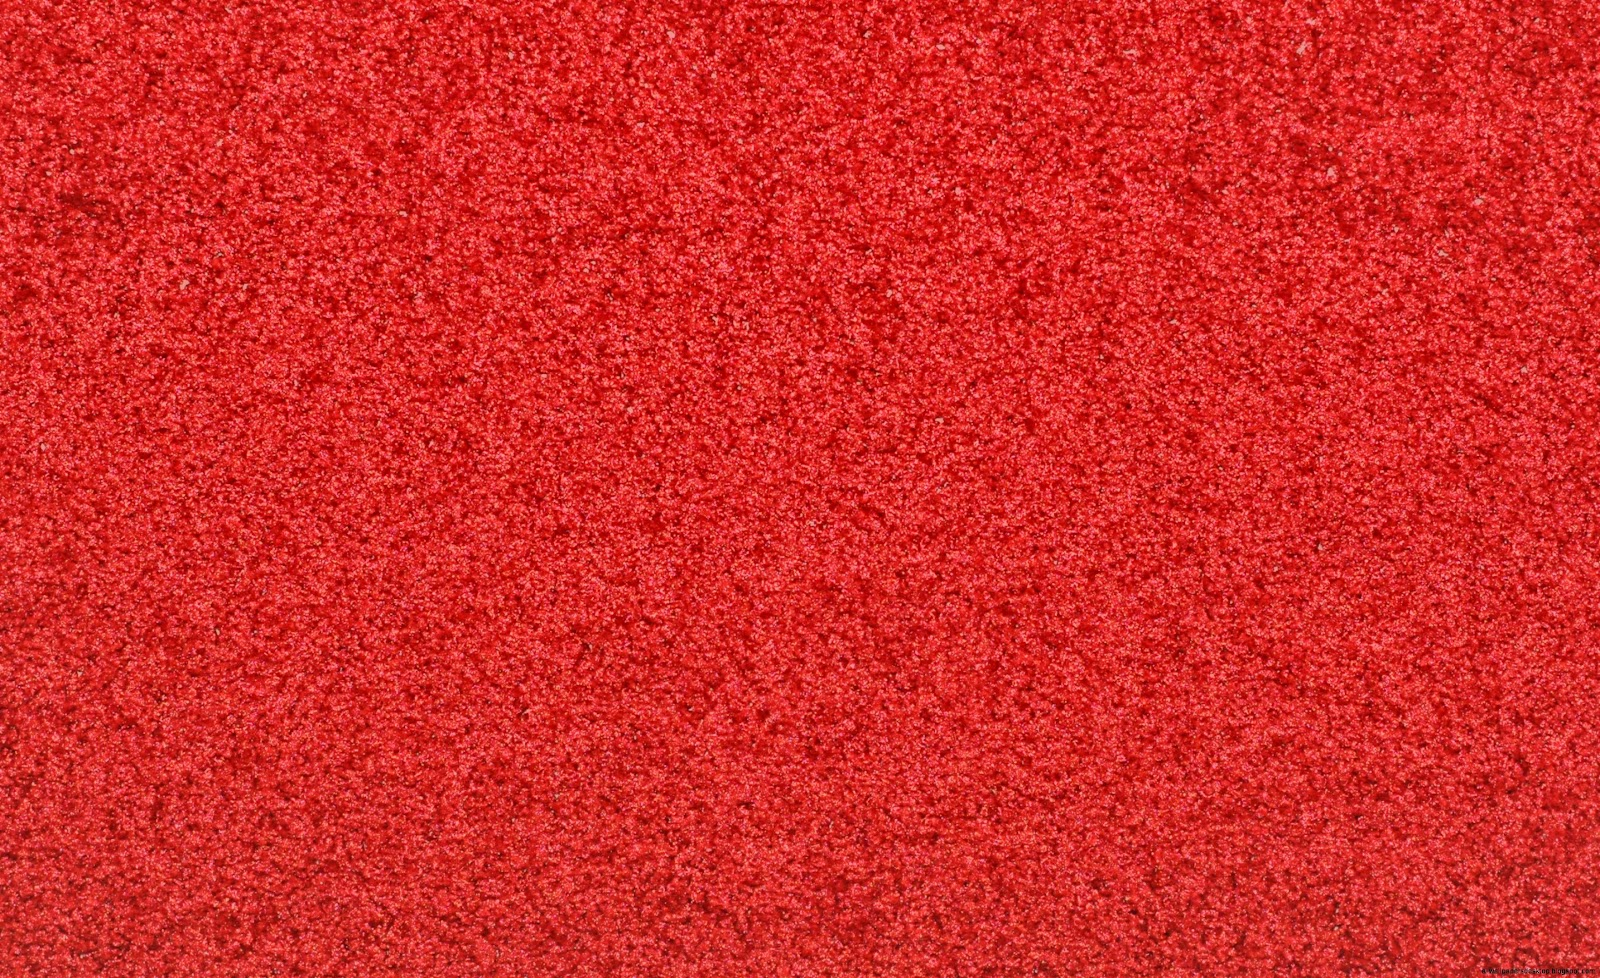 Red Carpet Rug Background Wallpaper Background Ultra HD 4K